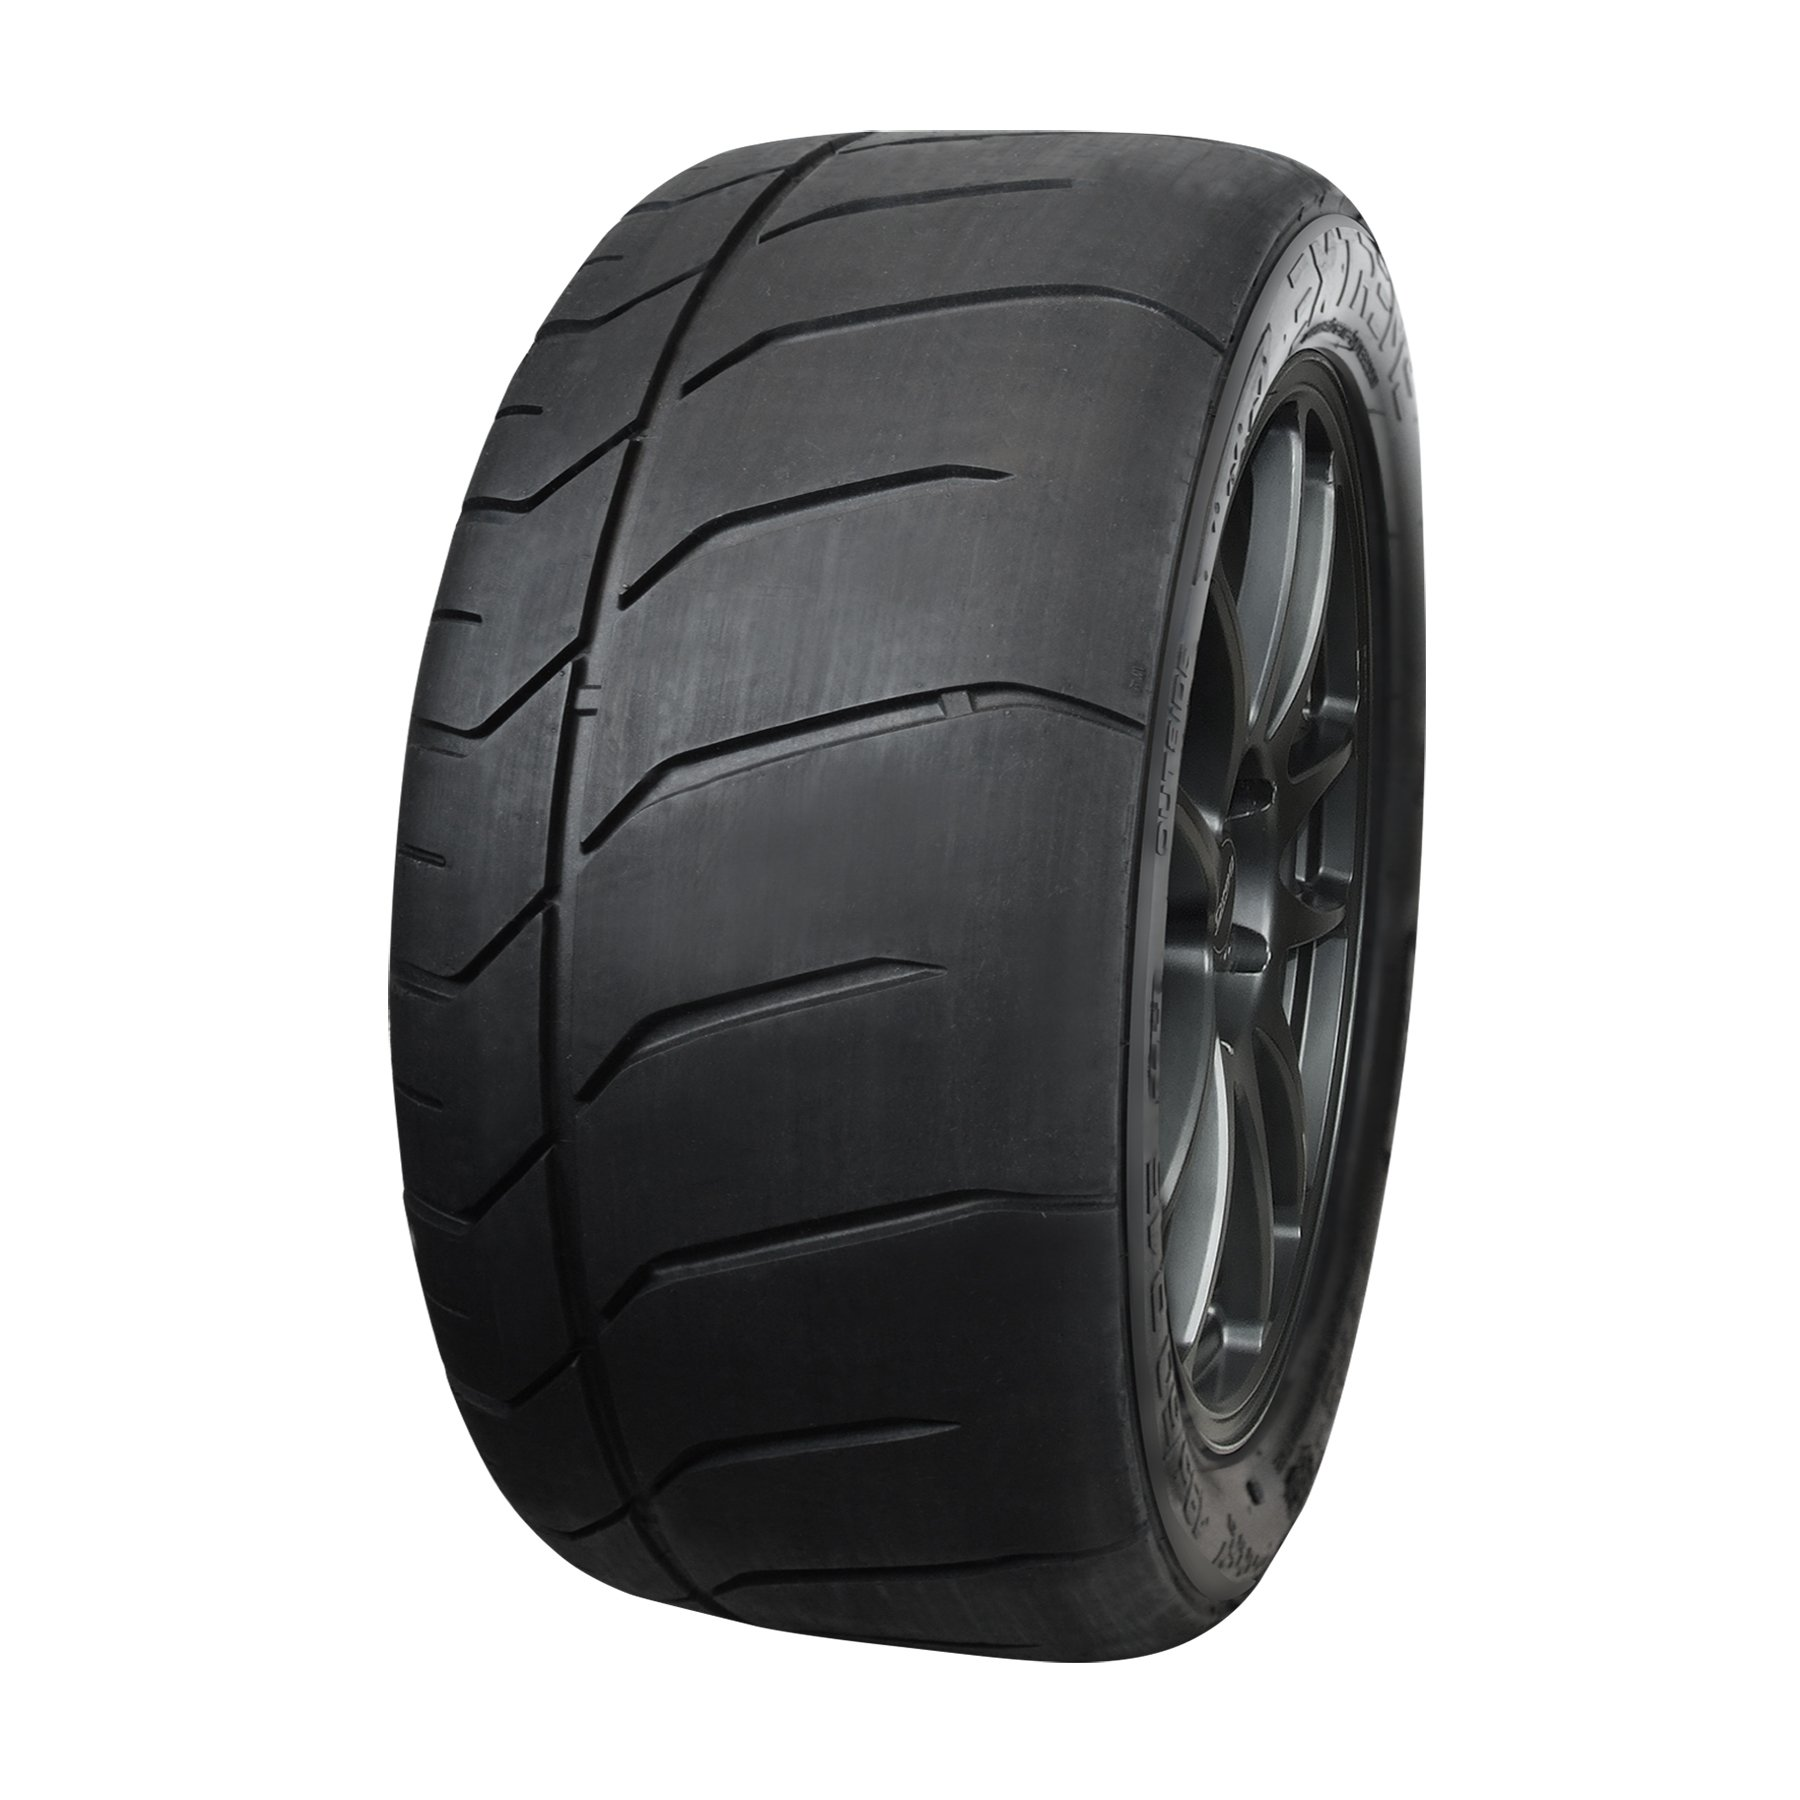 EXTREME VR2 TYPE-R5 Soft Racing Tire 195/50-15